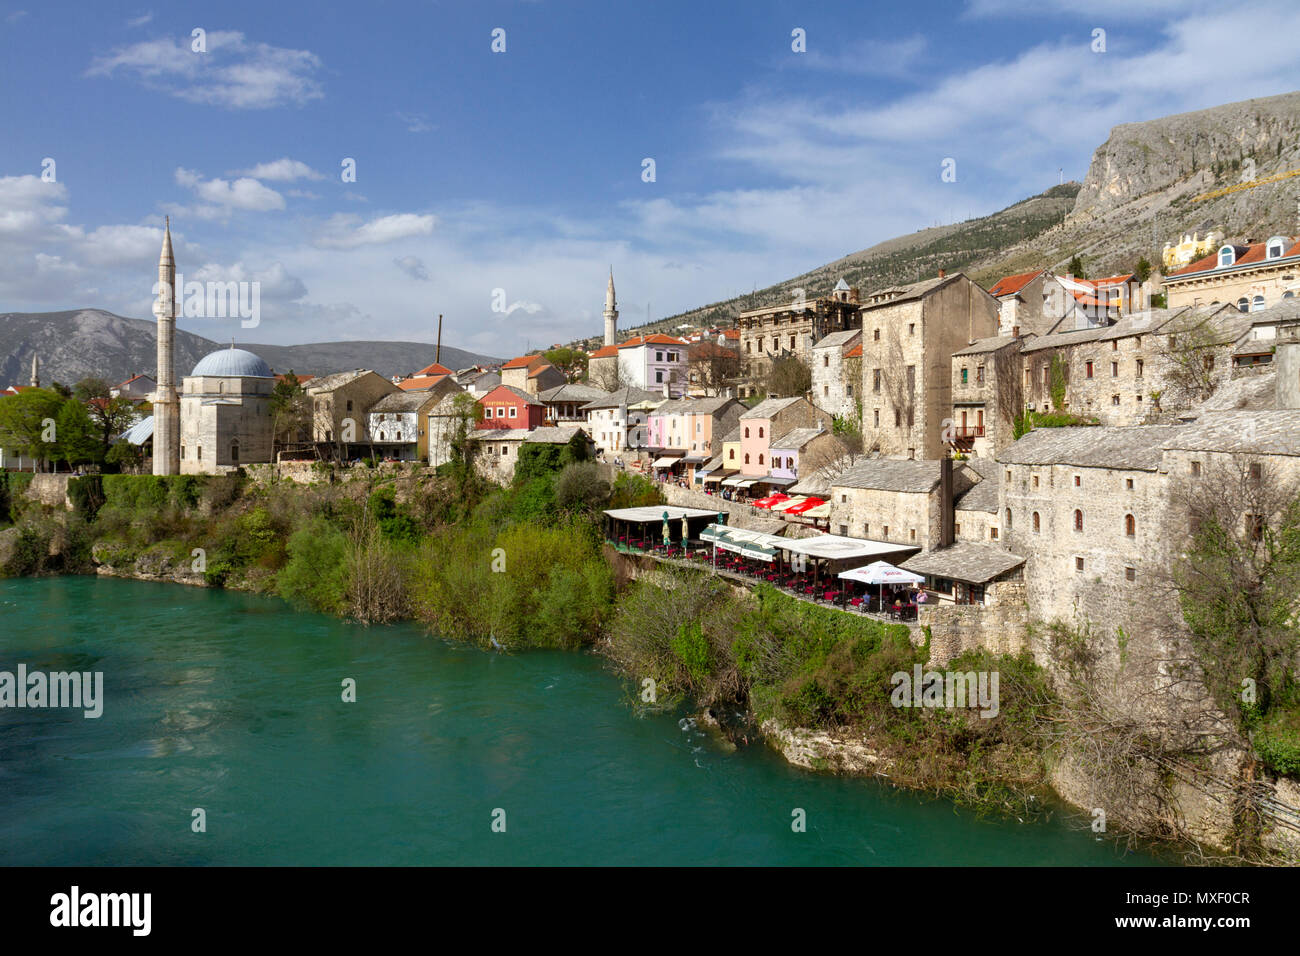 The view north of the historic Stari Most (Old Bridge) over the Neretva river in Mostar, the Federation of Bosnia and Herzegovina. - Stock Image